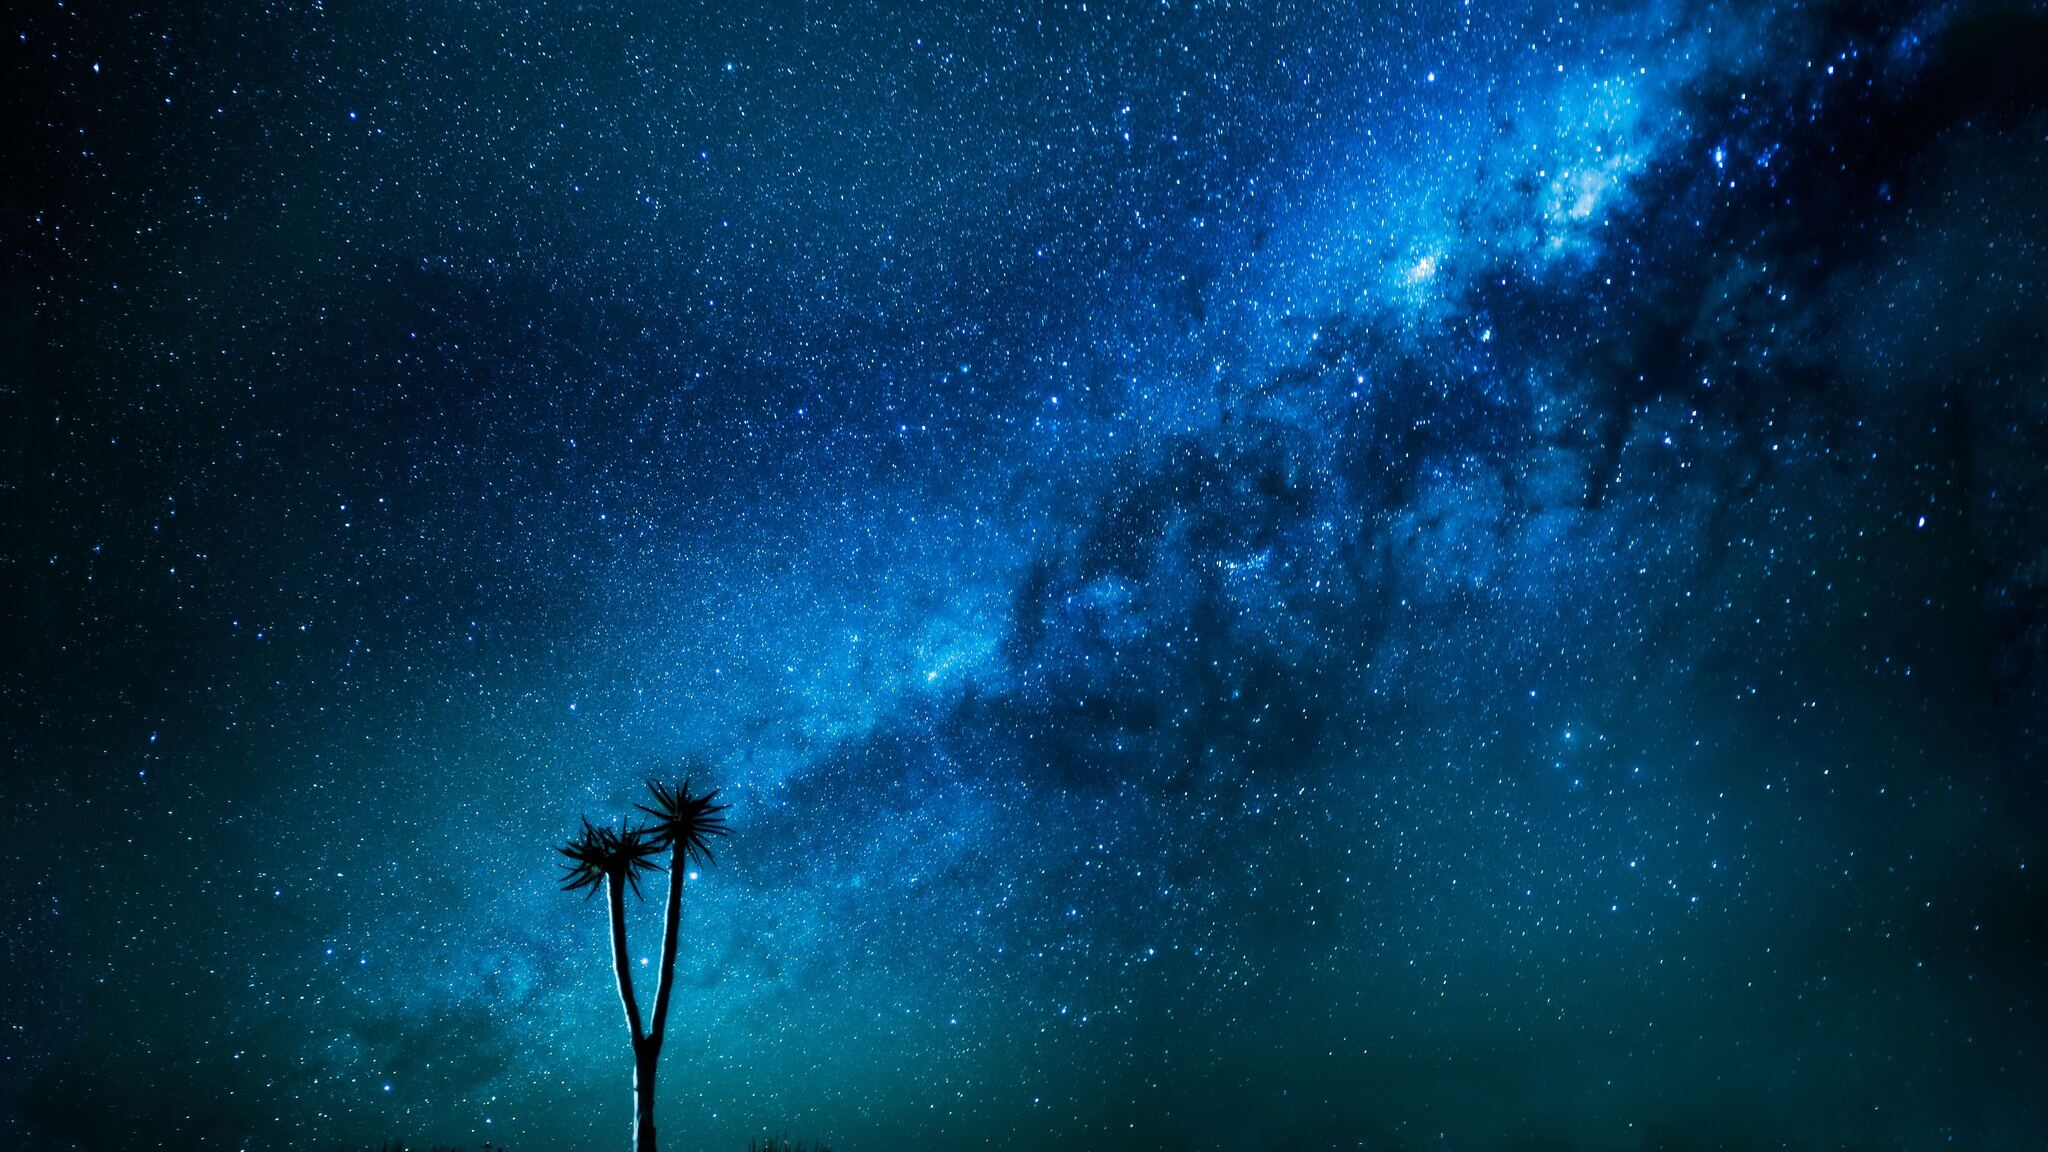 2048x1152 milkyway 8k 2048x1152 resolution hd 4k wallpapers, images